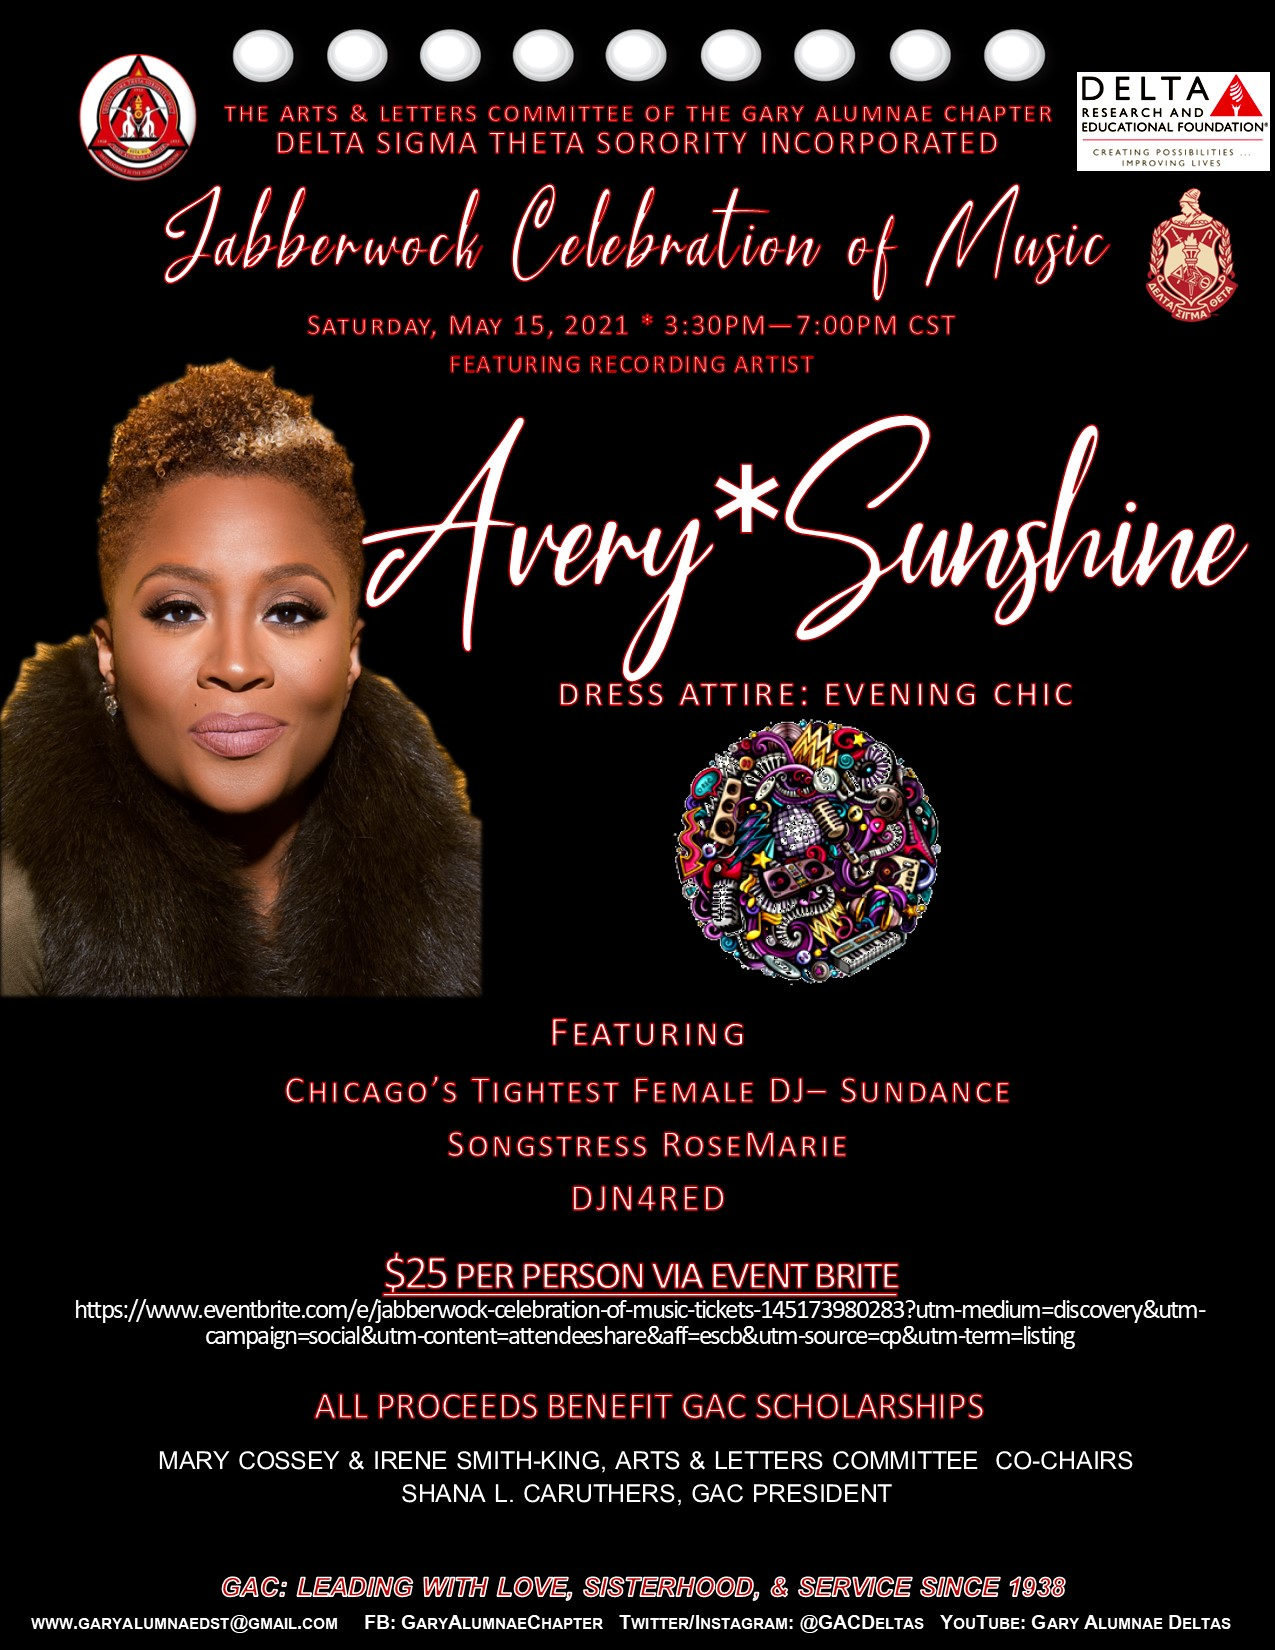 AVERY SUNSHINE HEADLINES JABBERWOCK EVENT! (click the picture to register)